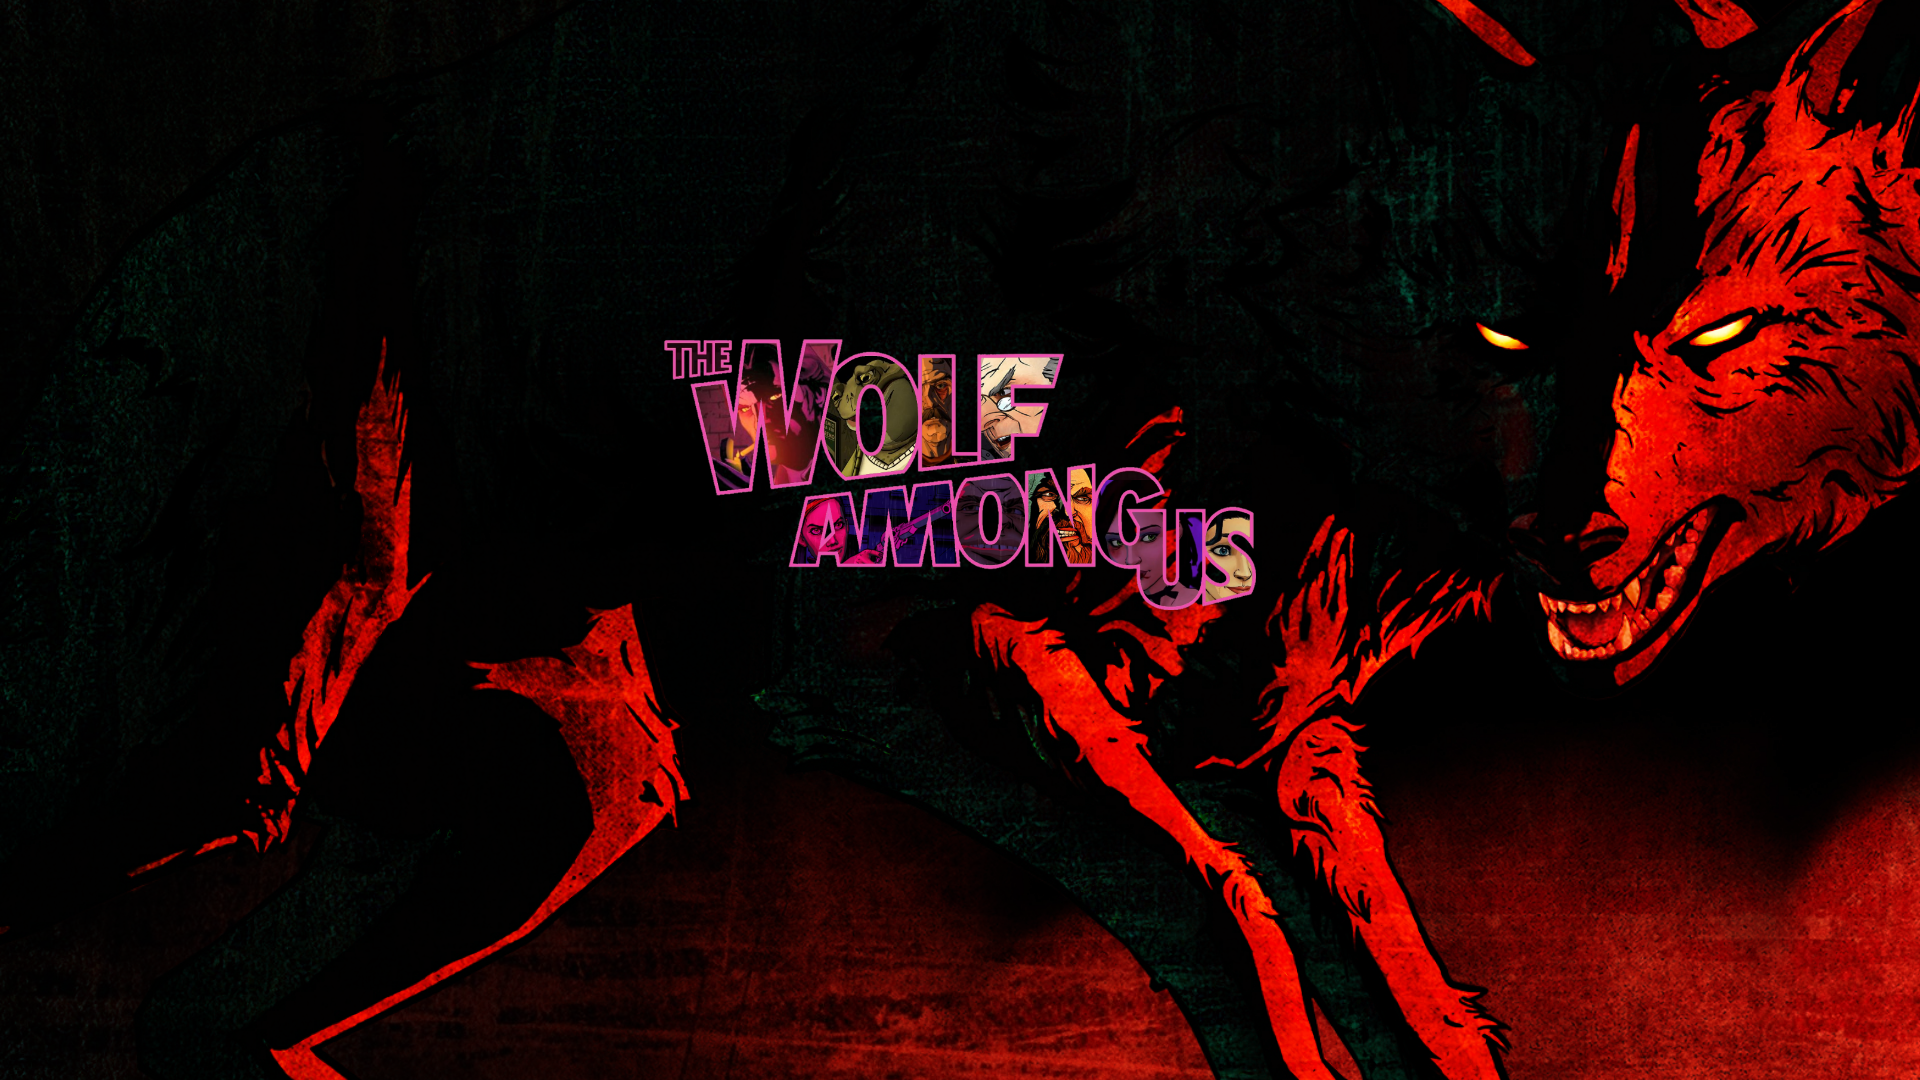 The Wolf Among Us The wolf among us, Neon signs, Neon